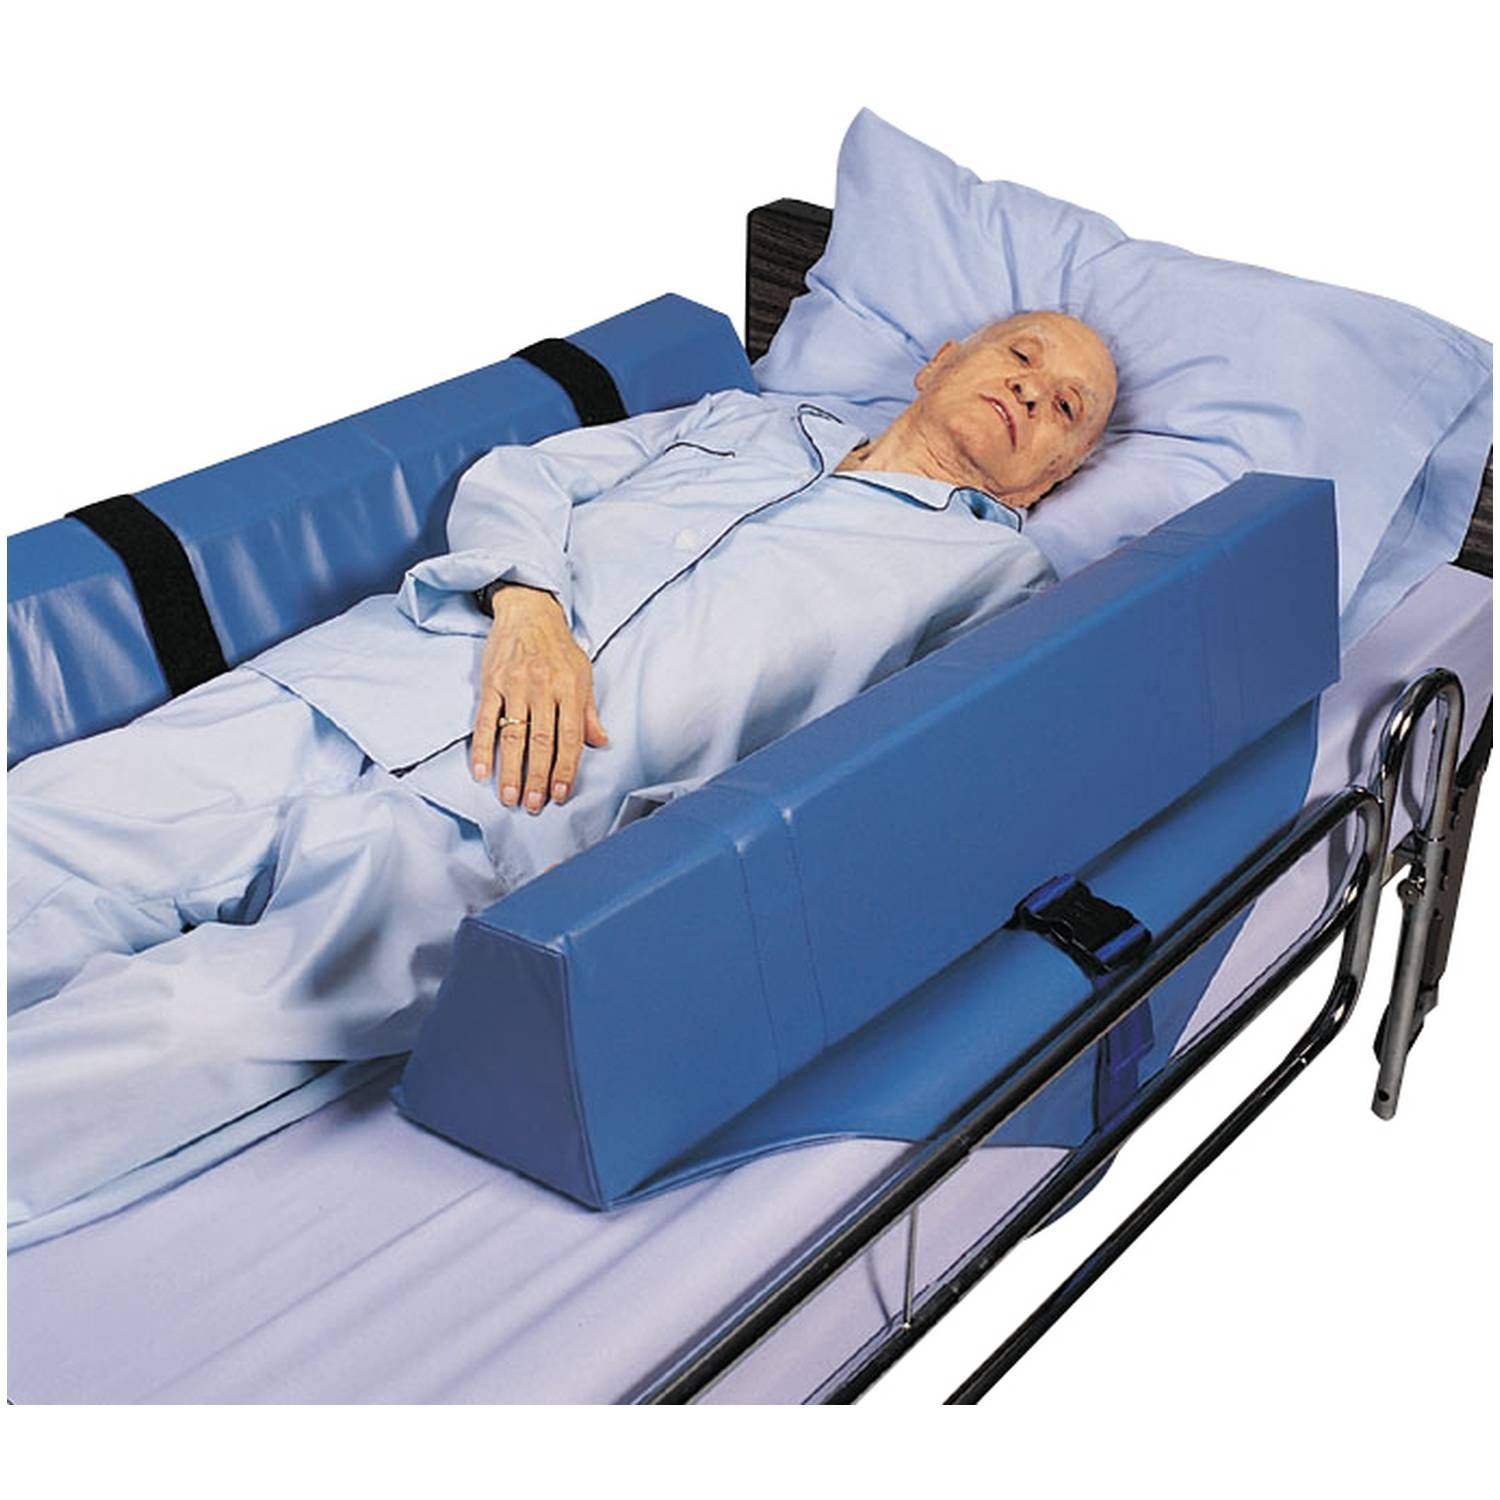 SKIL-CARE Roll-Control Bolster Set, 2-Pack